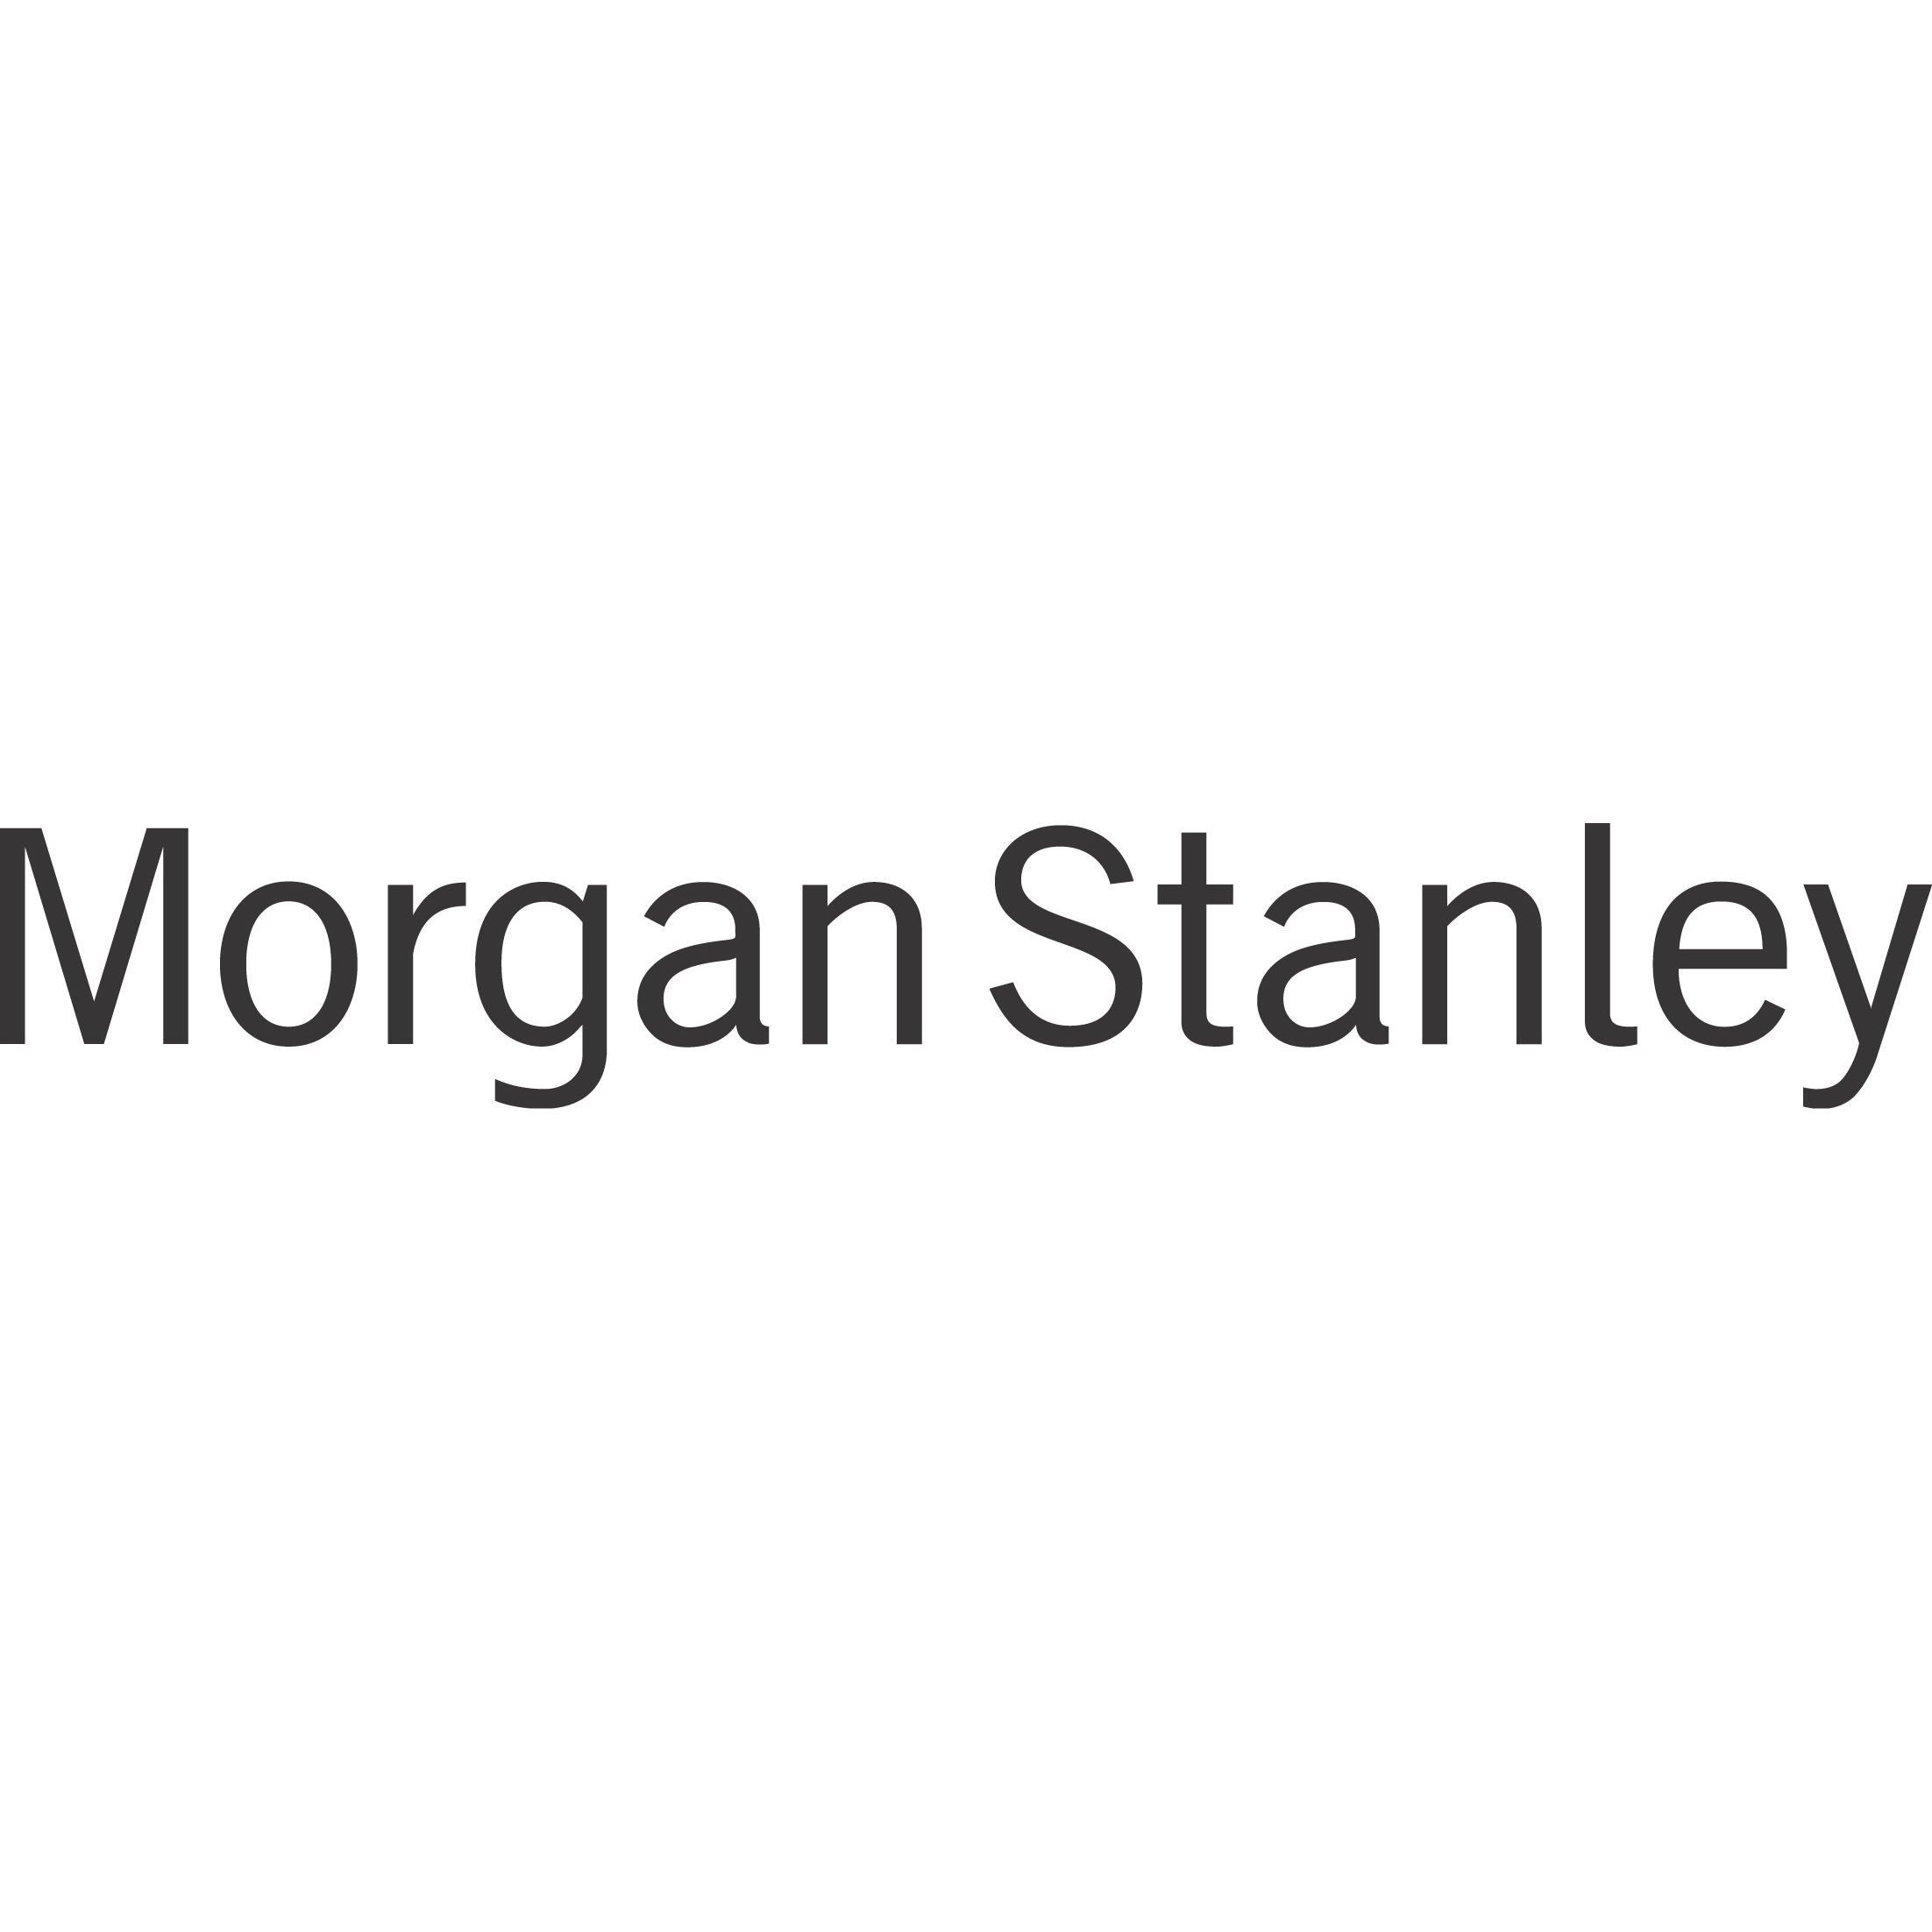 John J Beachy - Morgan Stanley